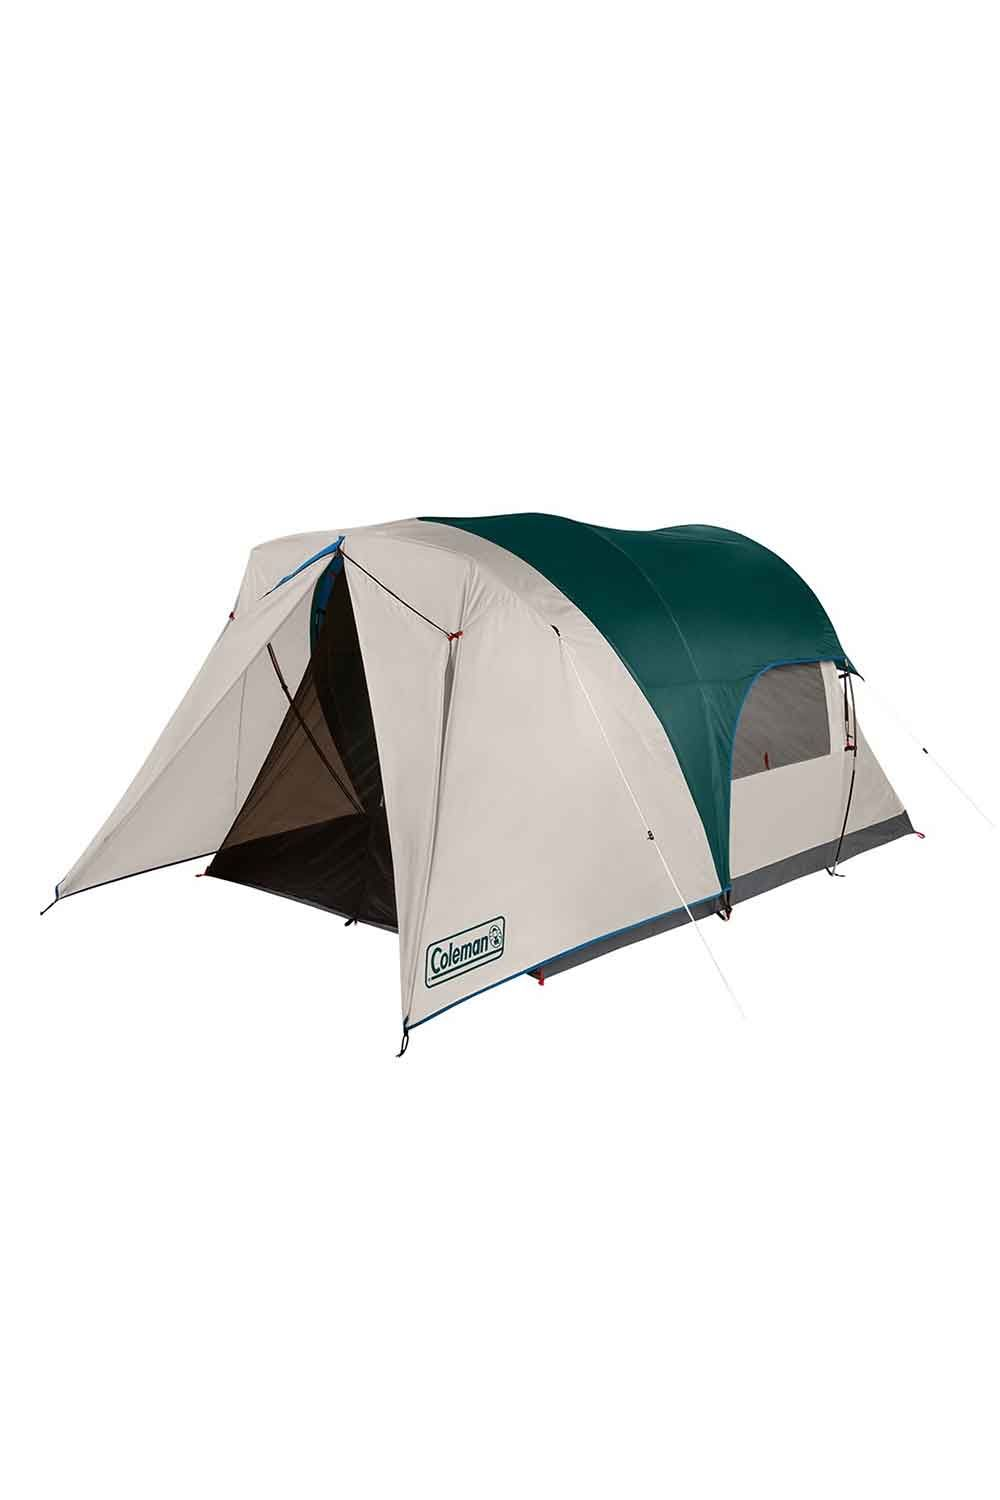 Coleman 4 Person Cabin Tent With Enclosed Screen Porch Evergreen Walmart Com In 2021 Tent Outdoor Geek Coleman